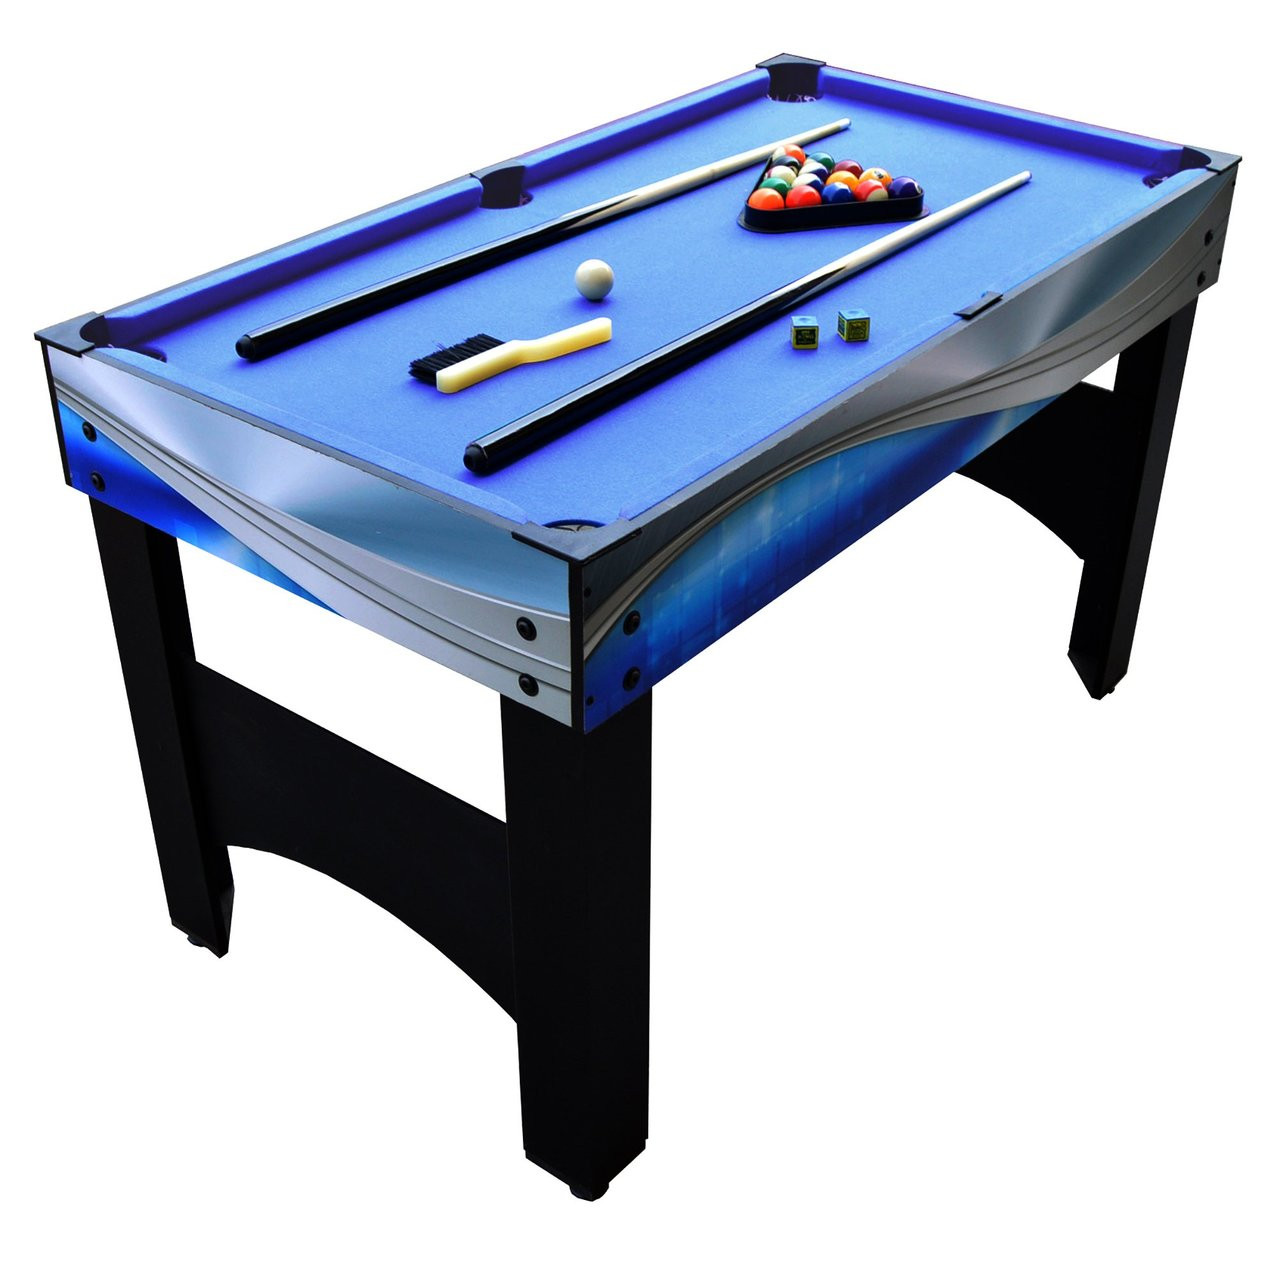 Matrix 54 In 7 In 1 Multi Game Table With Foosball Pool Glide Hockey Table Tennis